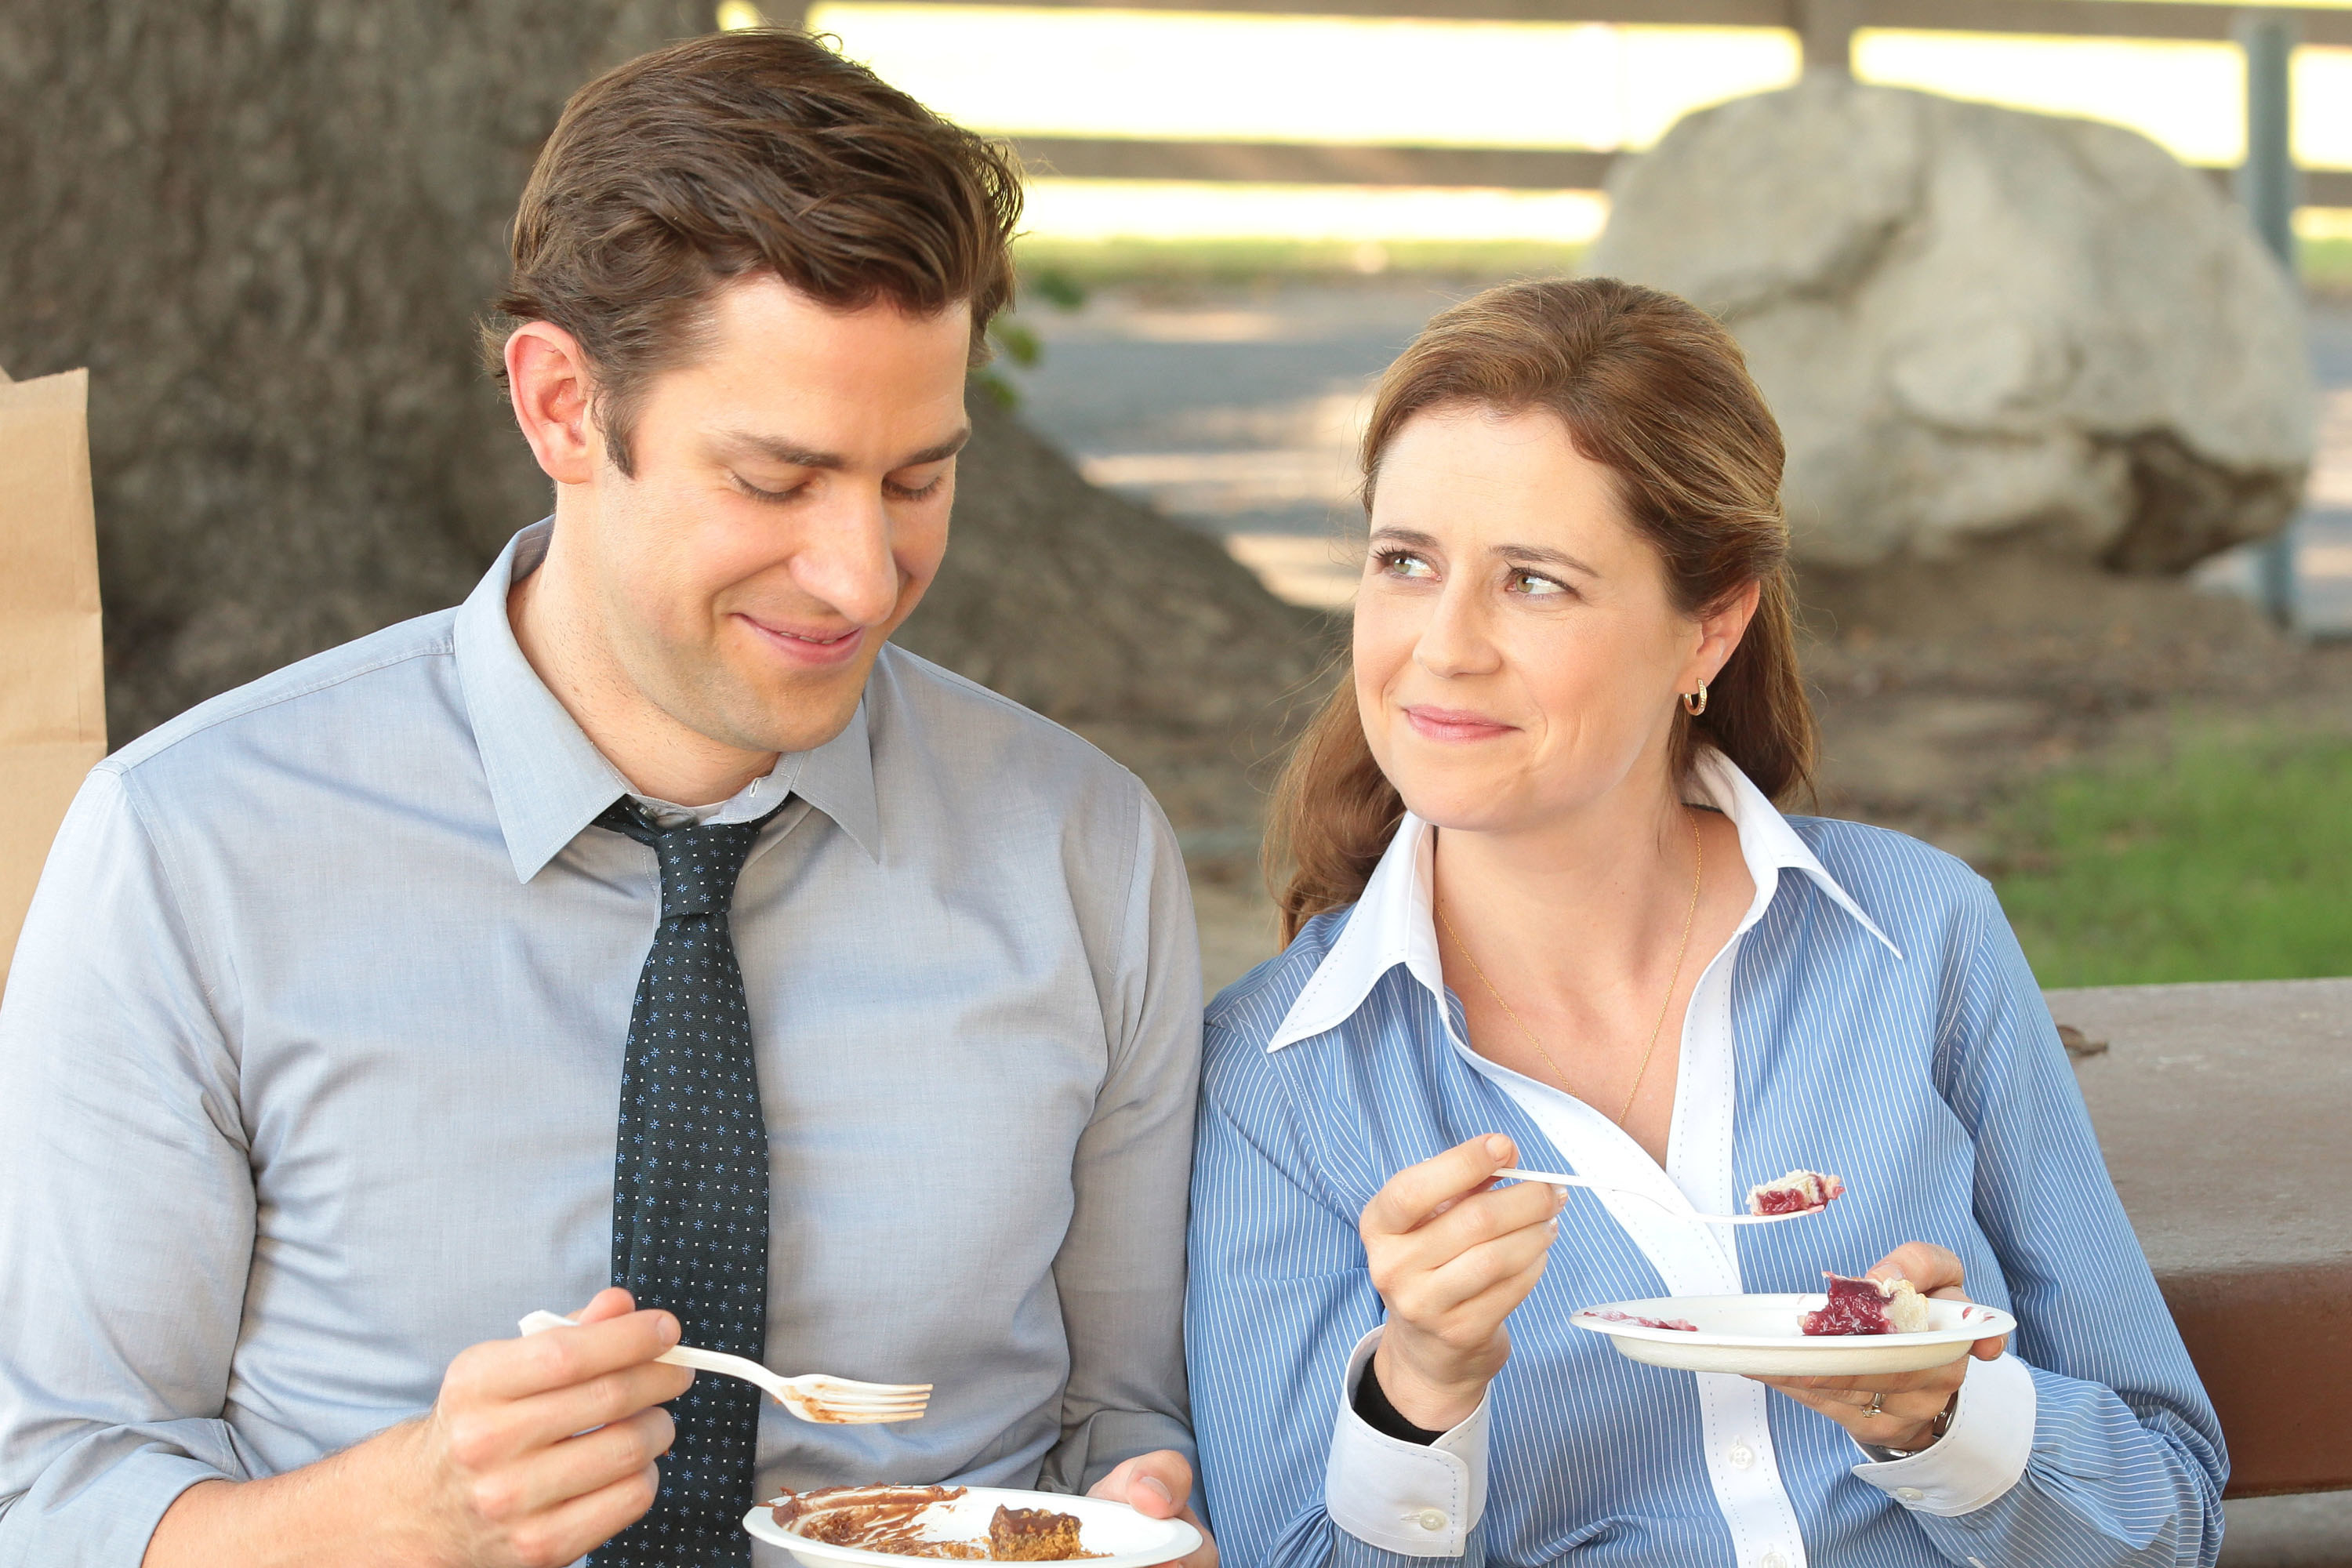 Pam smiles at Jim while they sit outside